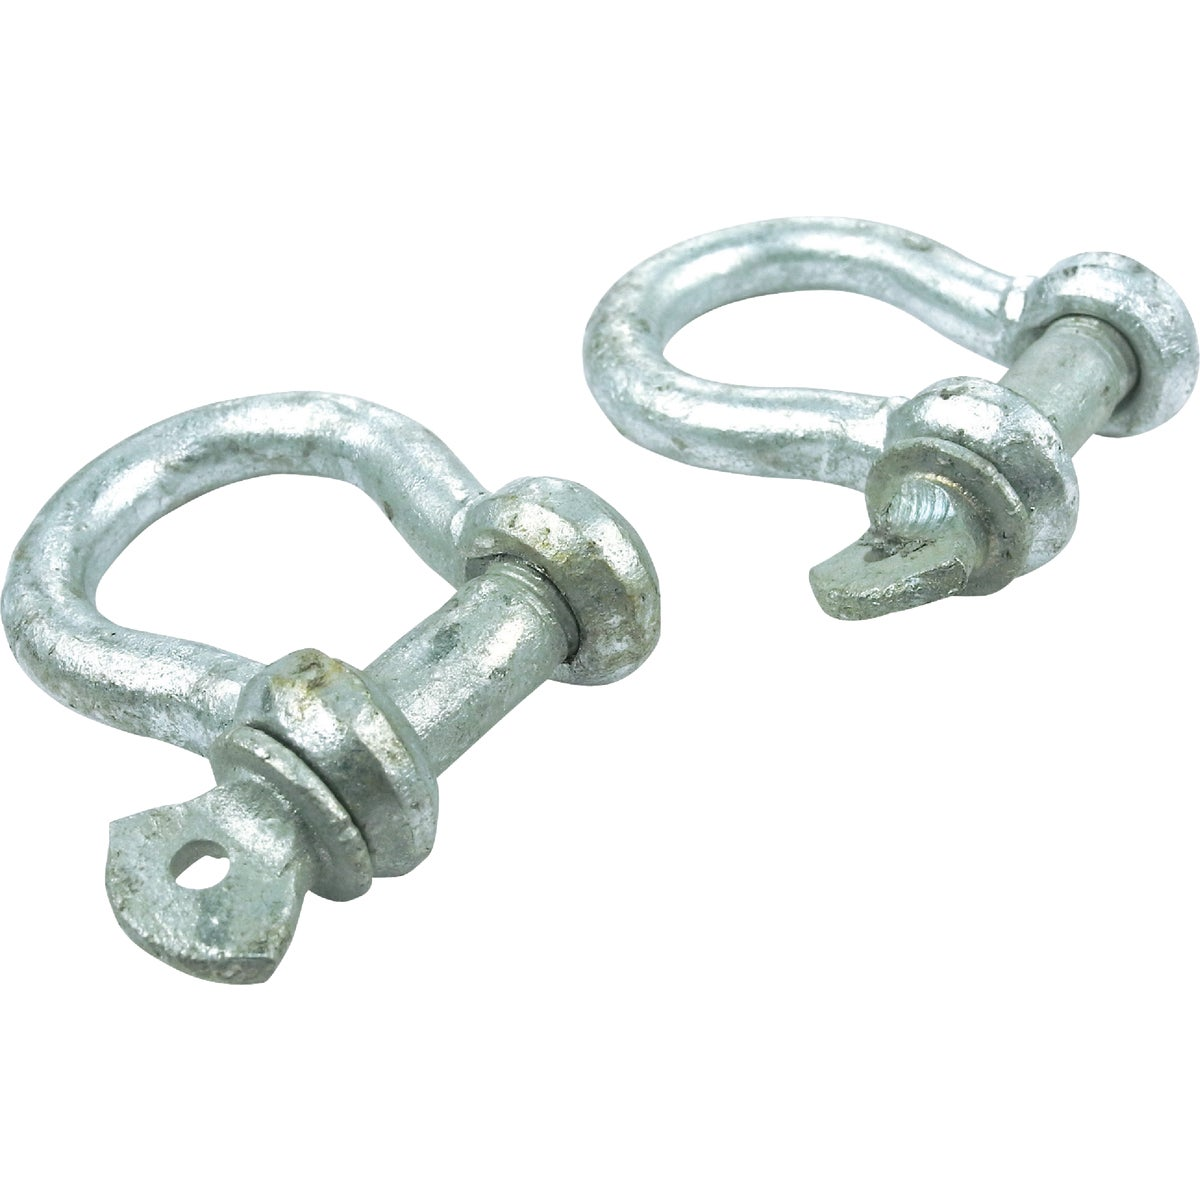 "1/4"" ANCHOR SHACKLE - 43051 by Seachoice Prod"